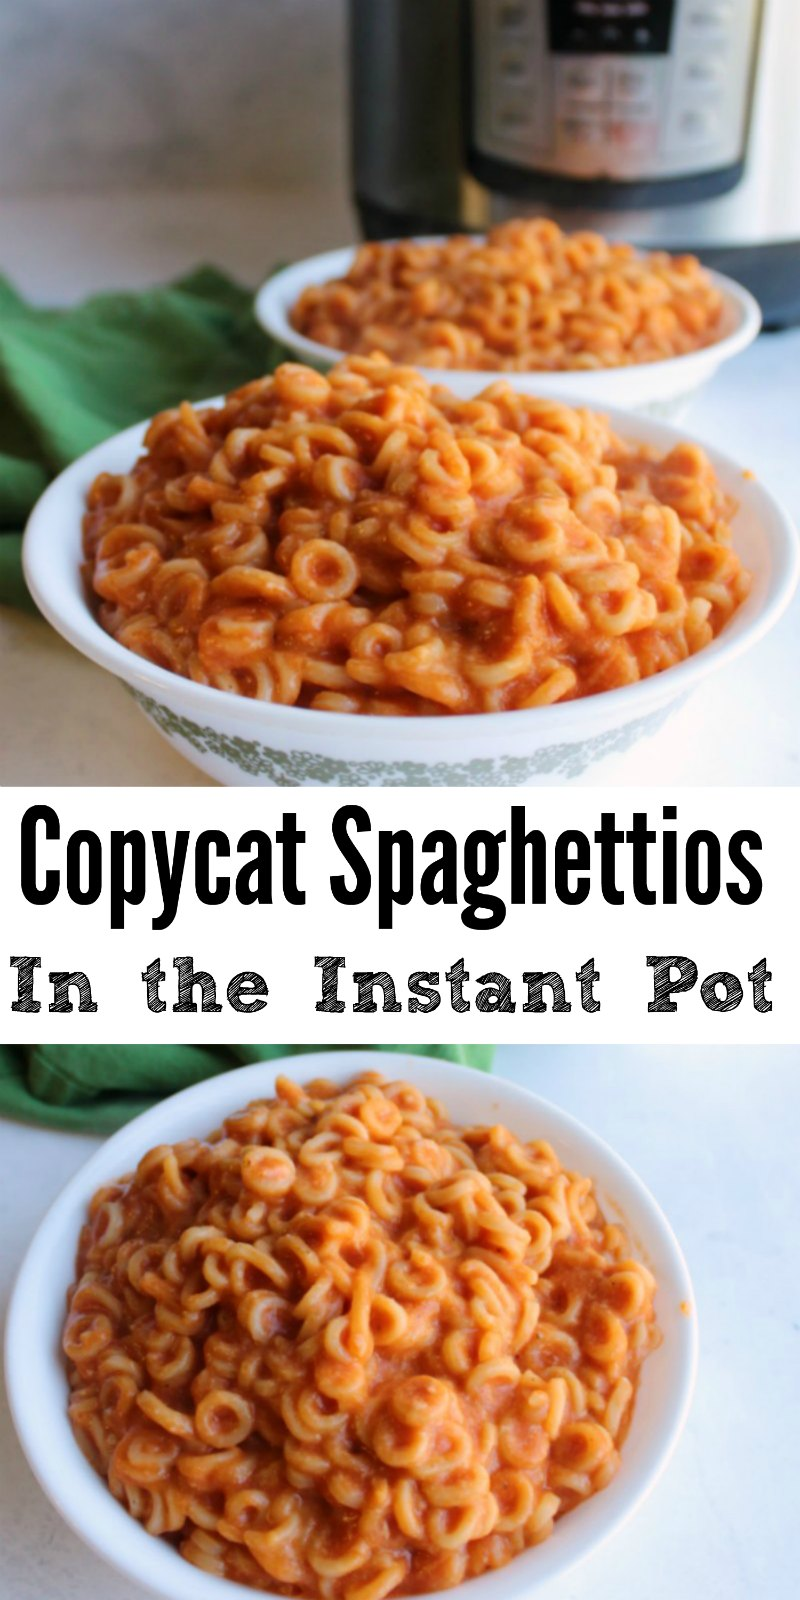 Make homemade Spaghettios in your instant pot. This easy meal will make you relive your childhood in the tastiest kind of way!